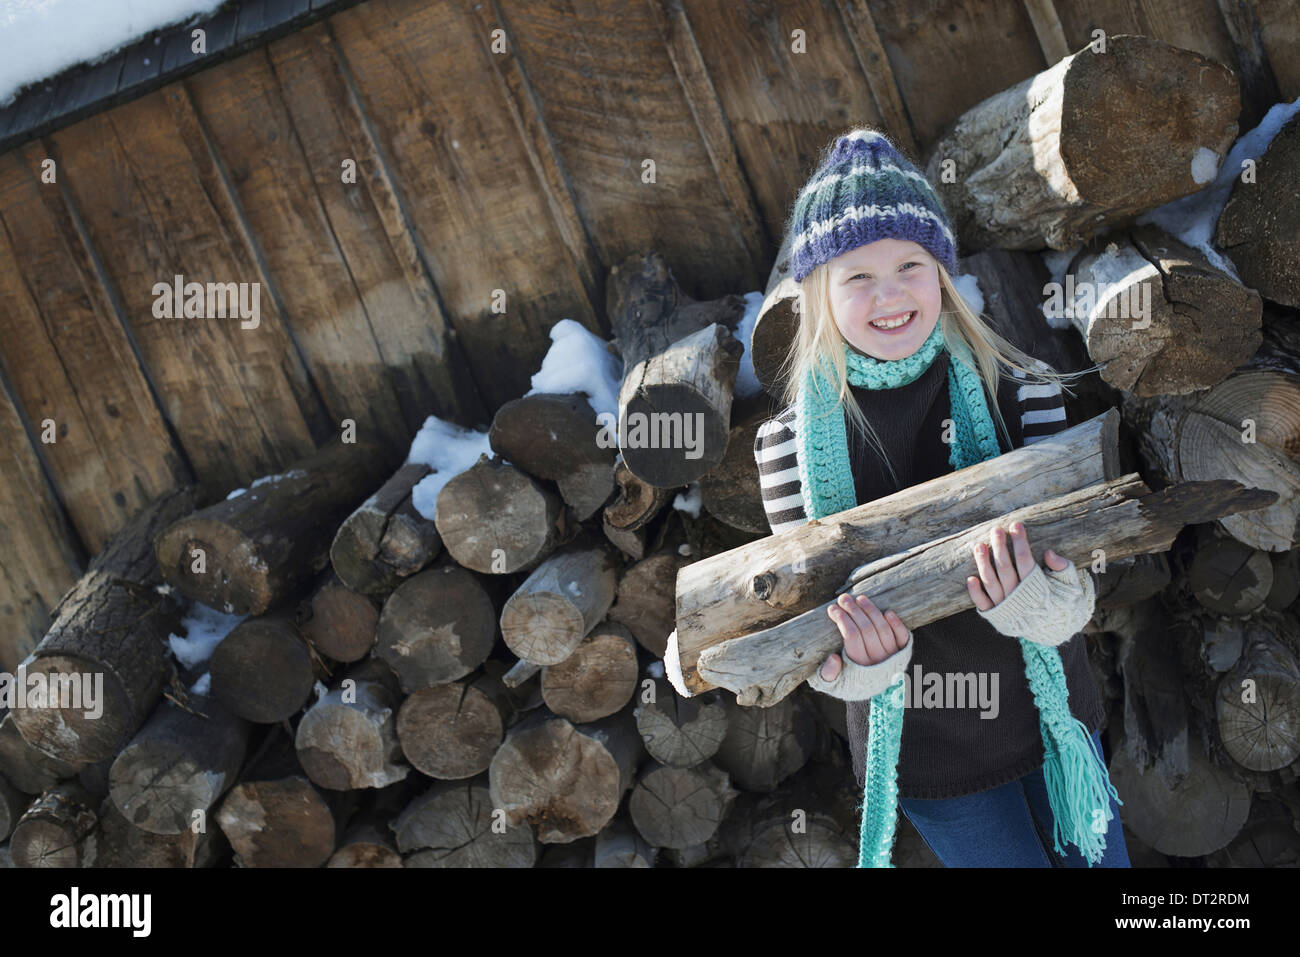 Winter scenery with snow on the ground A girl collecting firewood from the log pile - Stock Image